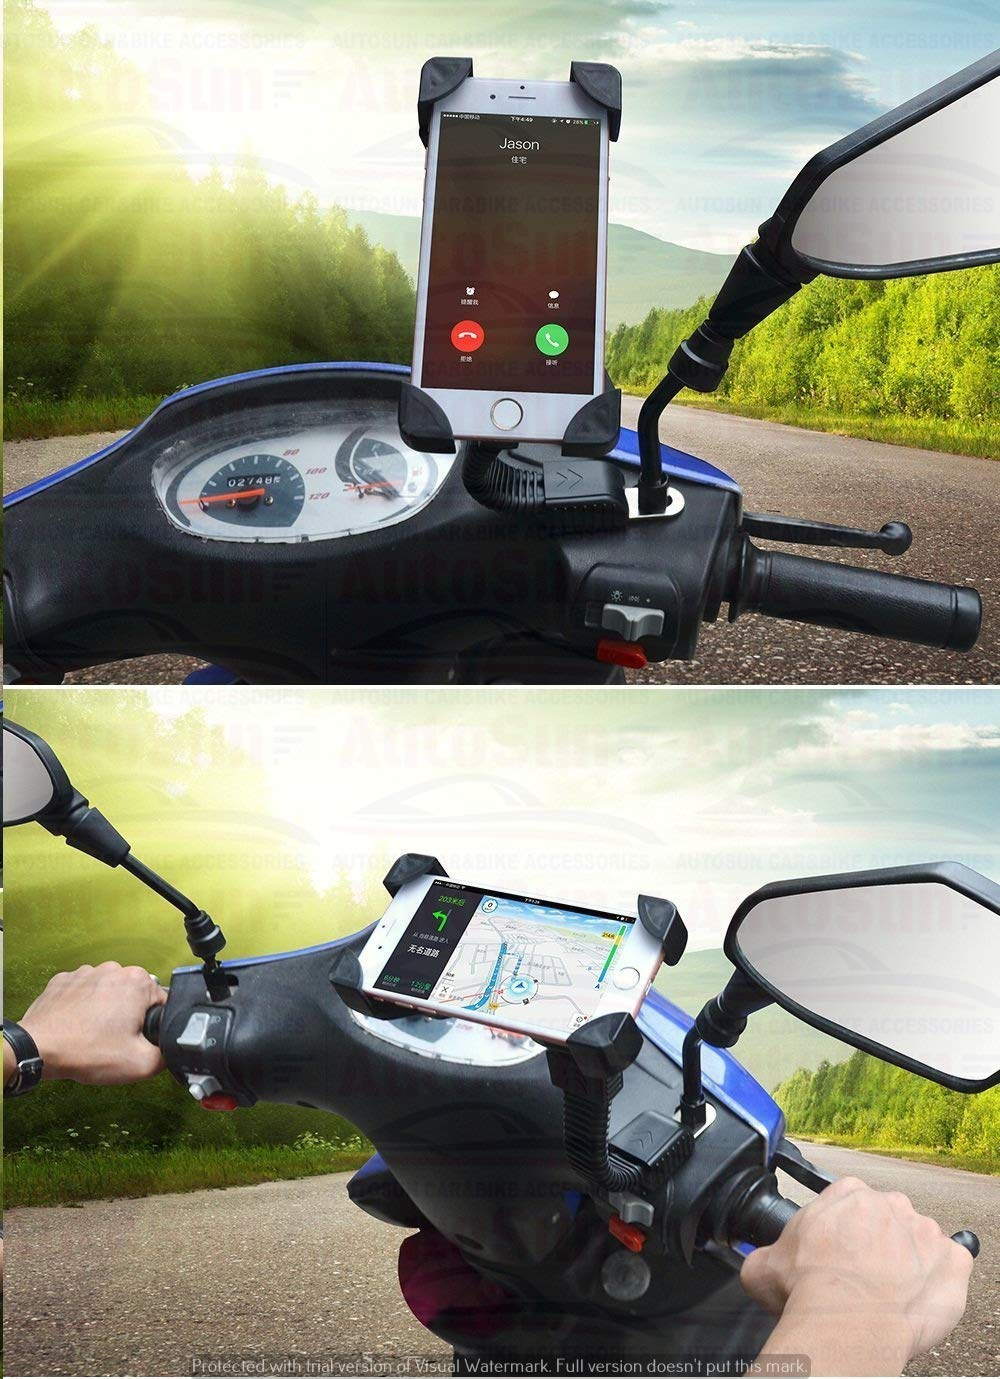 Autosun Mount Cell Phone Holder Installed To Rearview Mirror Value Furthermore Honda Motorcycle Wiring Diagrams On Telephone For Activa 125 Car Motorbike